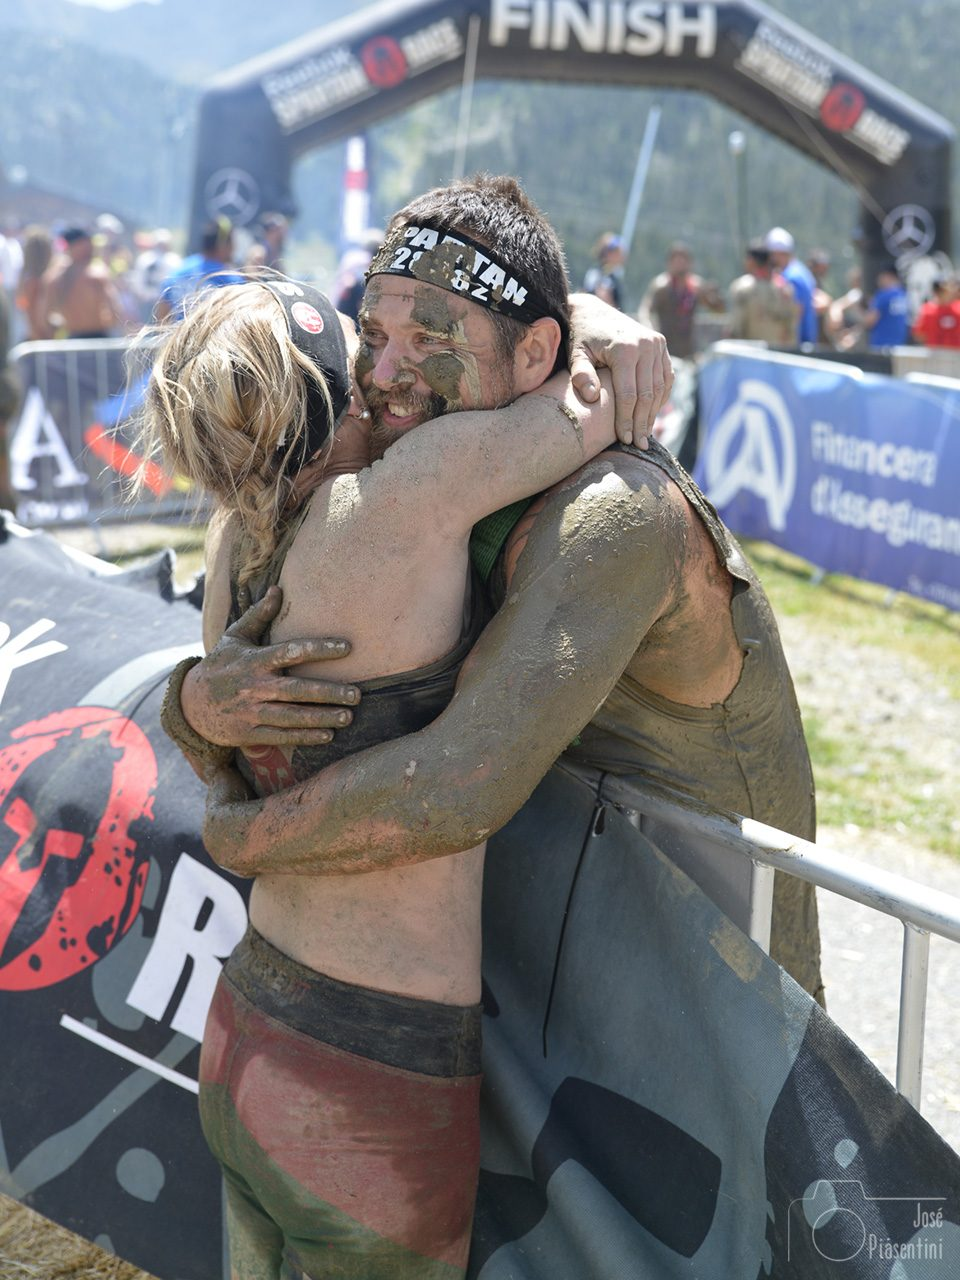 Happy-finisher-Reebok-Spartan-Race-Andorra-Grandvalira